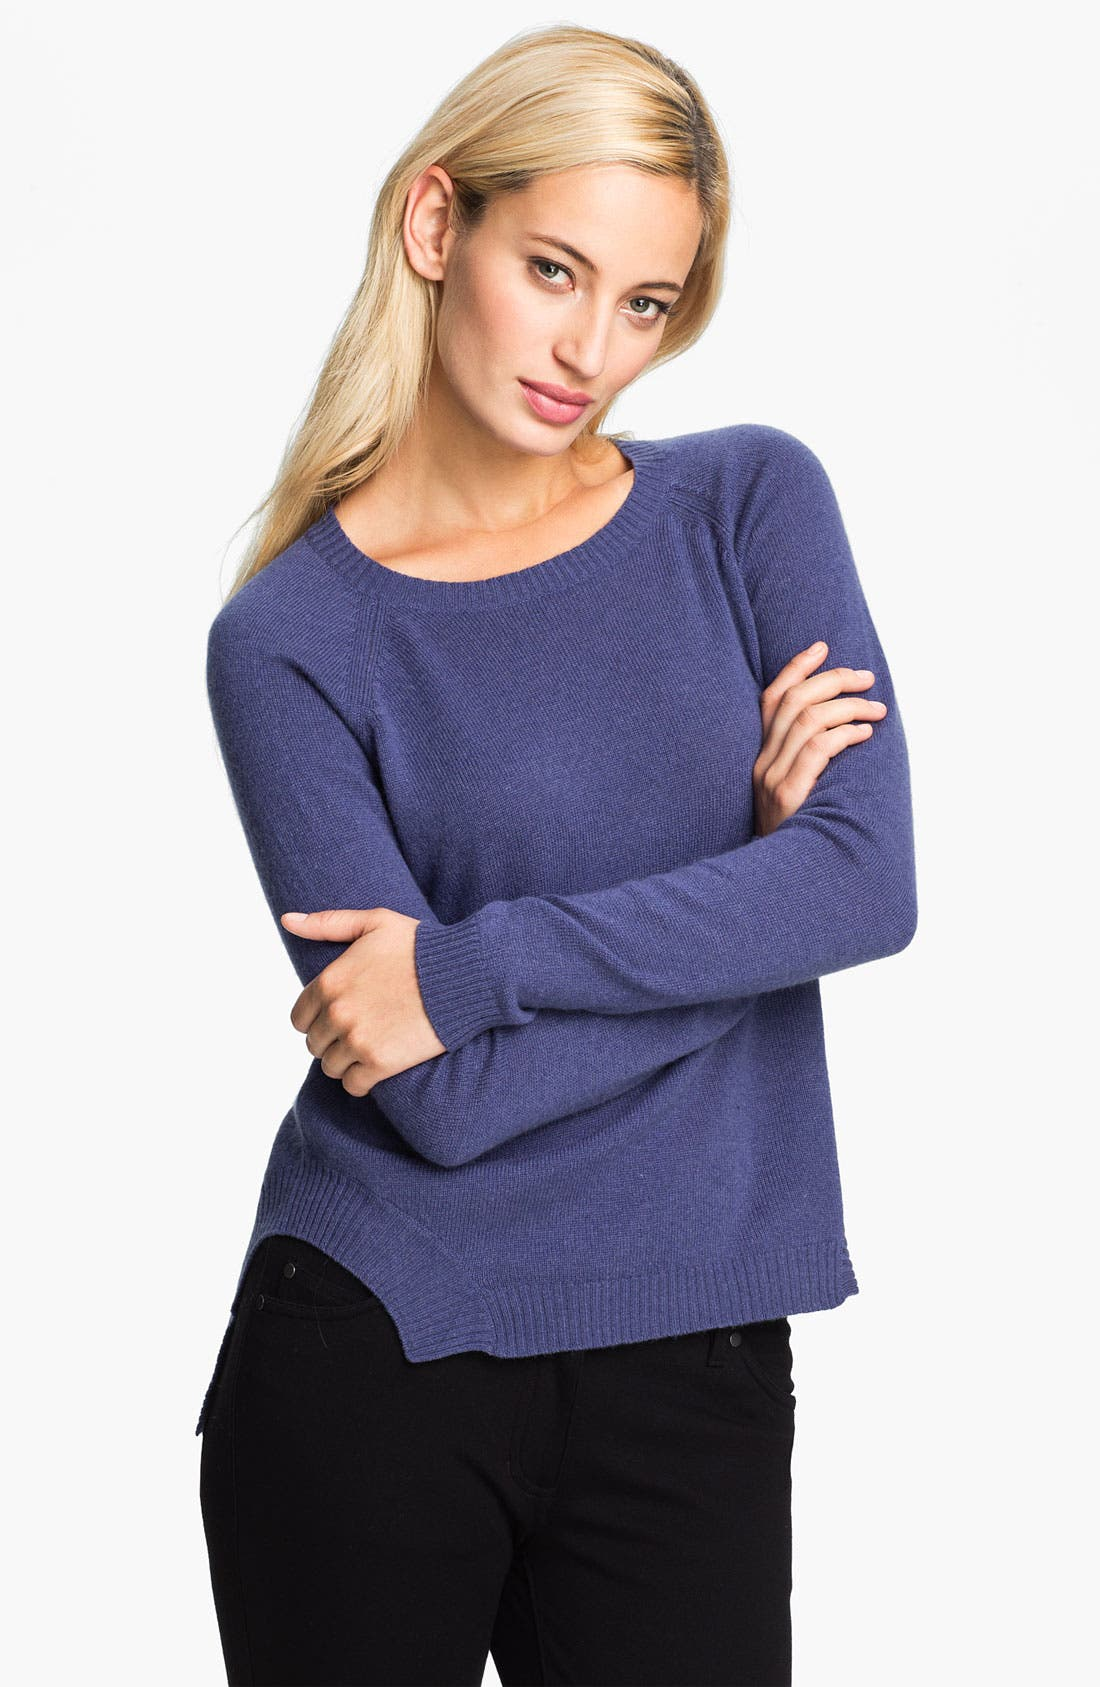 Alternate Image 1 Selected - Christopher Fischer 'Gisbelle' Cashmere Sweater (Online Exclusive)